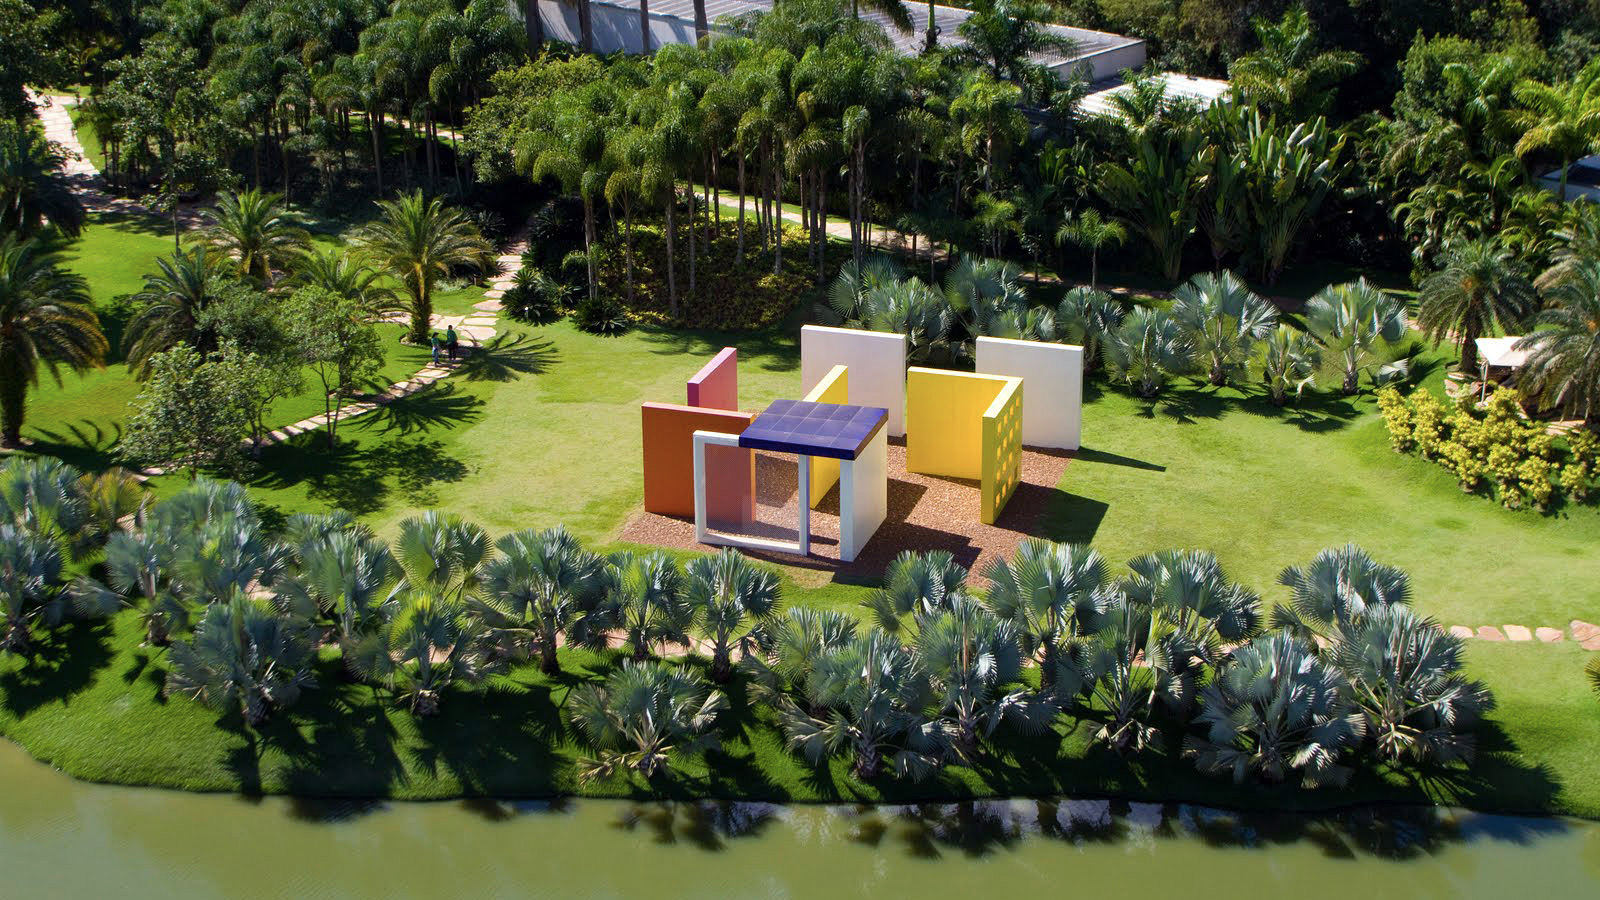 instituto-inhotim-penetravel-magic-square-5-helio-oiticica